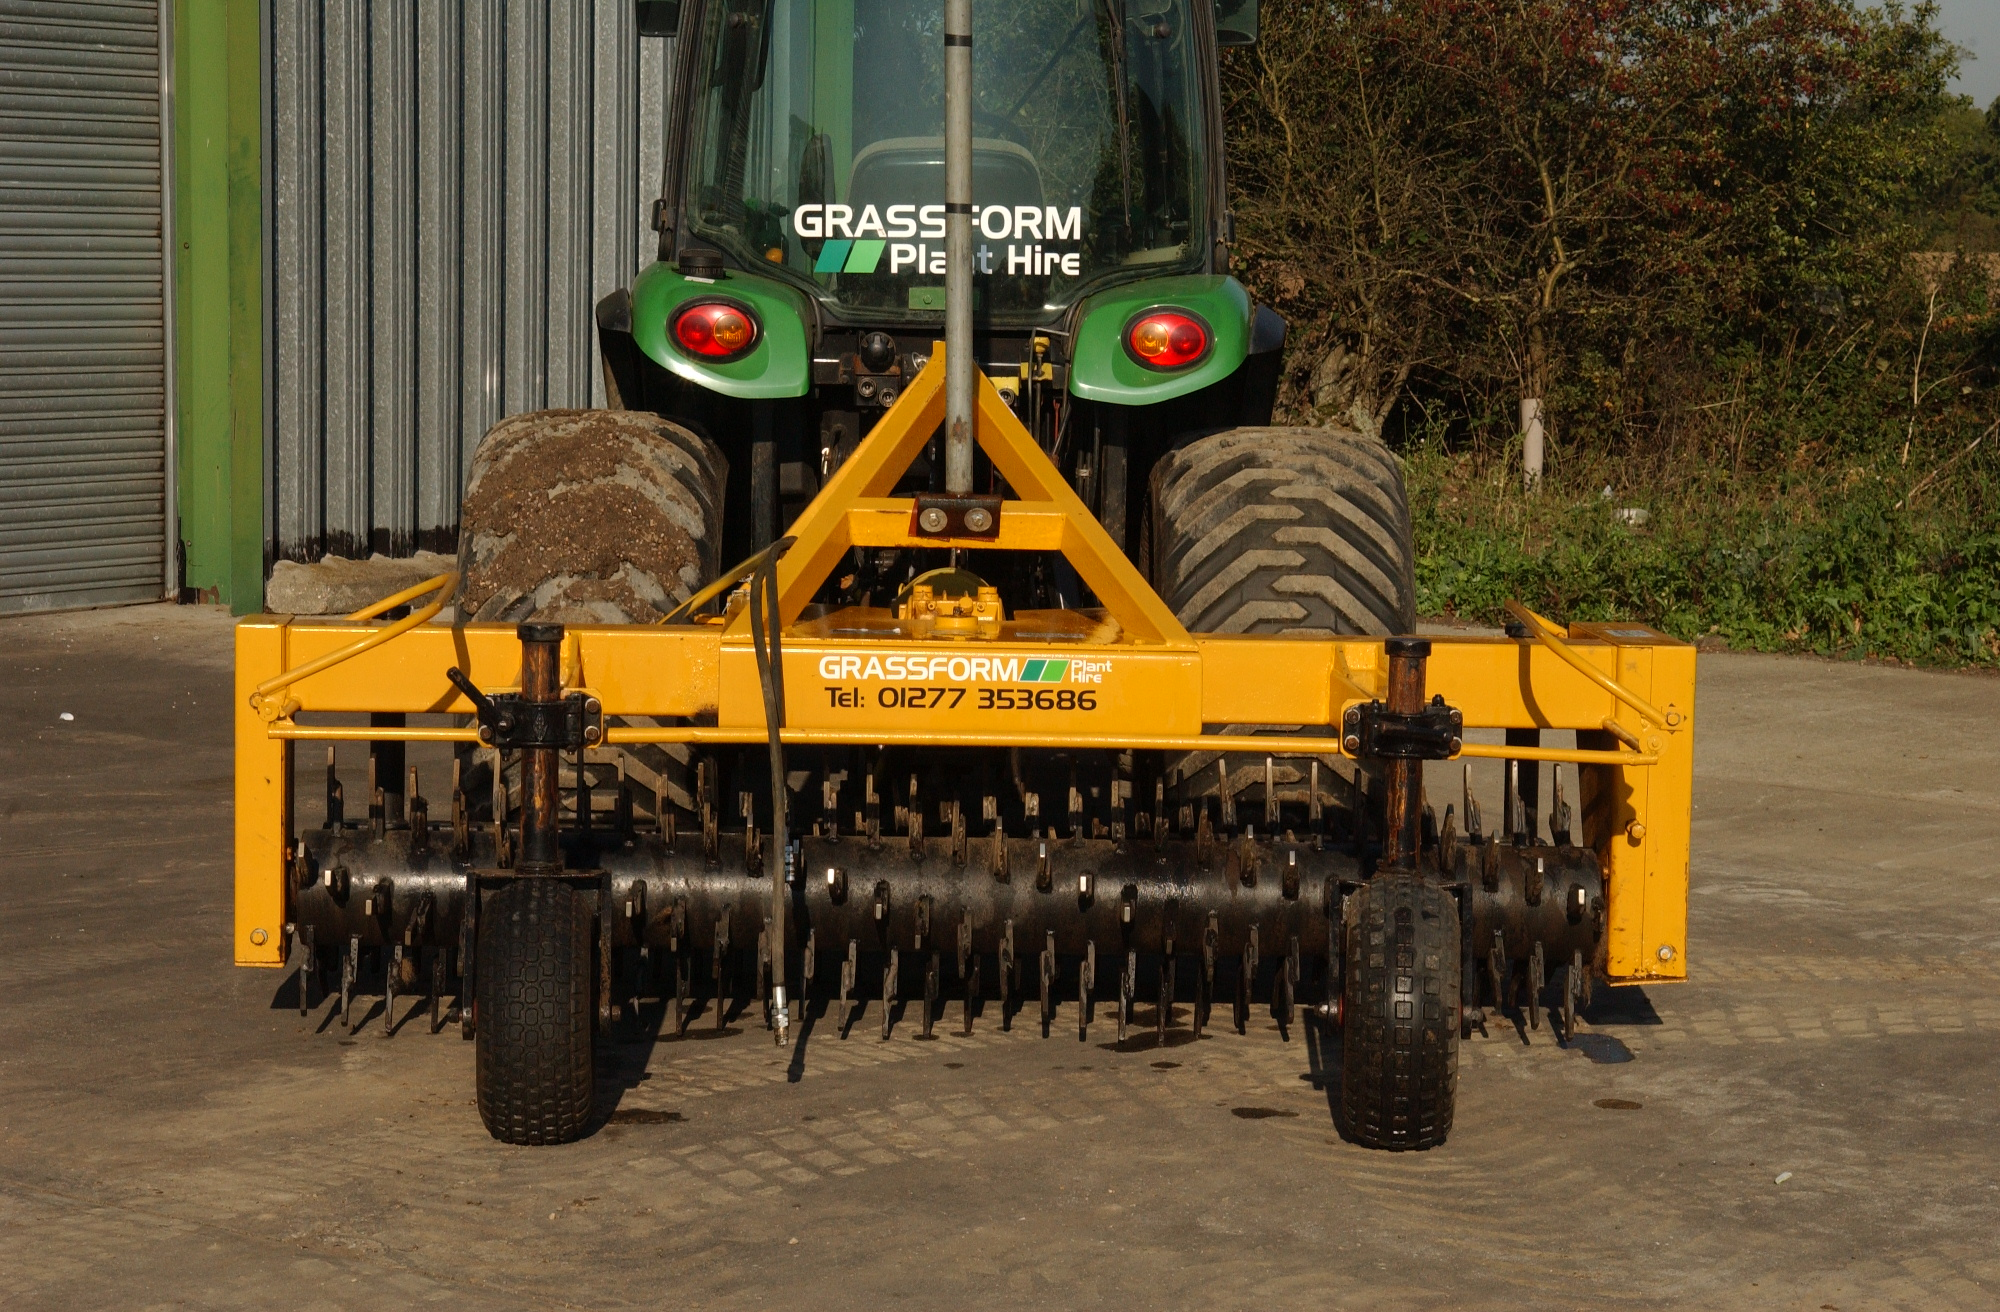 Stone Rakes for Tractors - Bing images